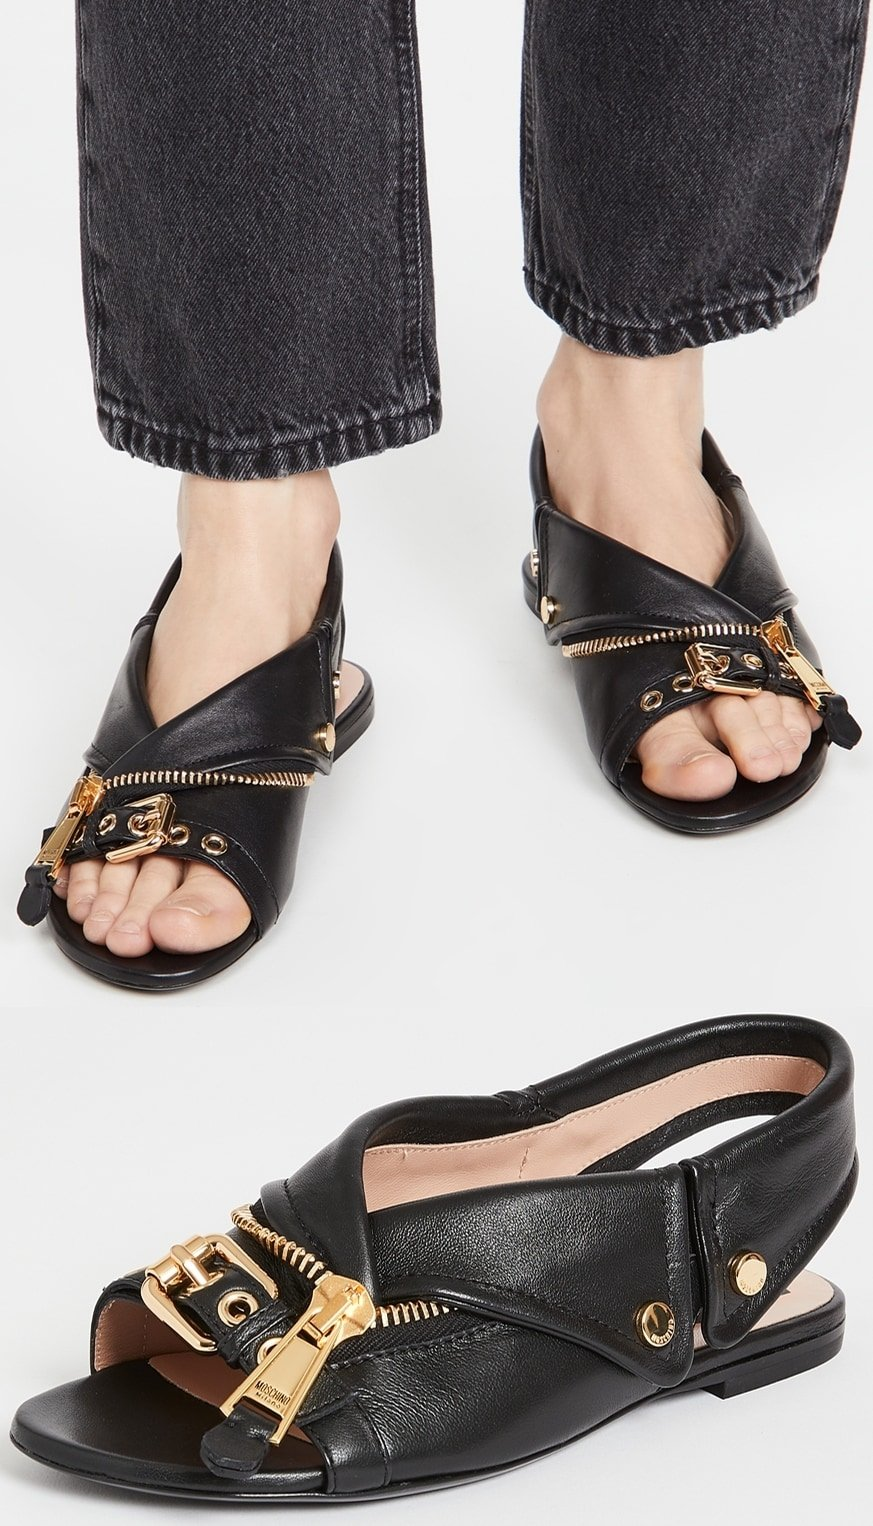 Flat slingback sandals with gold-tone hardware inspired by biker jackets